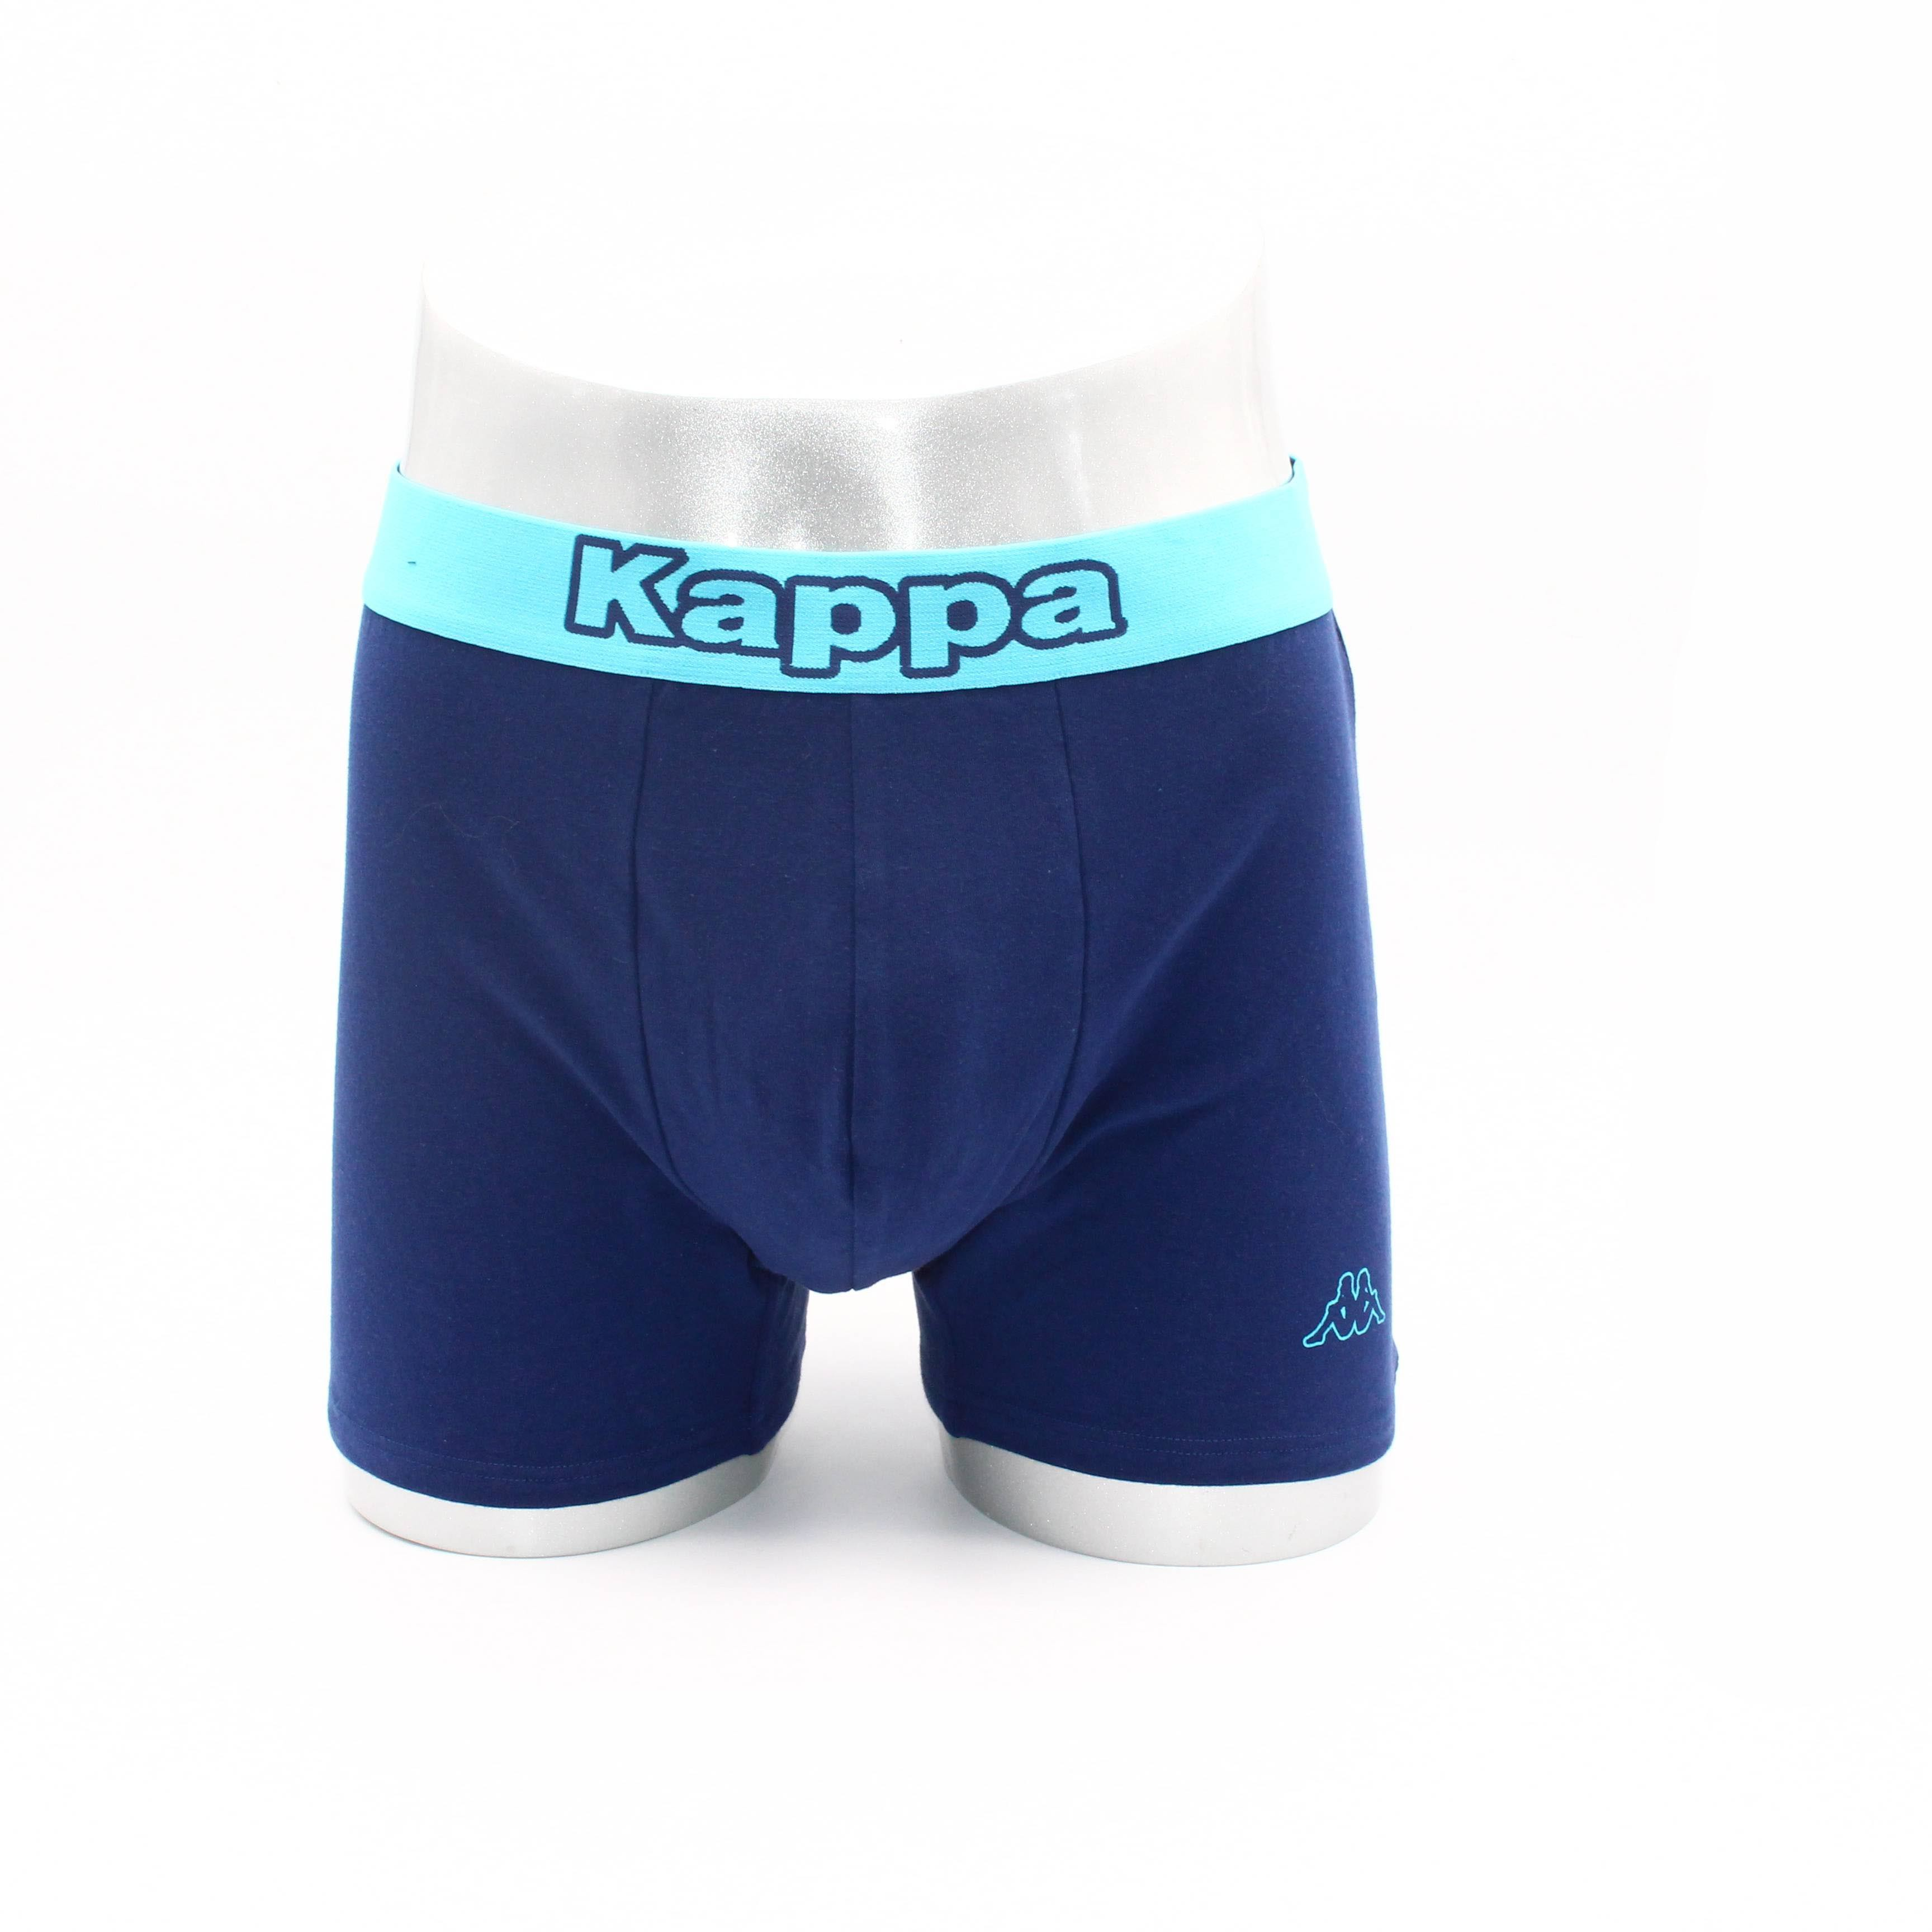 Men?s Boxer Shorts/Underwear, Basic Solid Color, Constrasting Color Elastic Band, High Quality